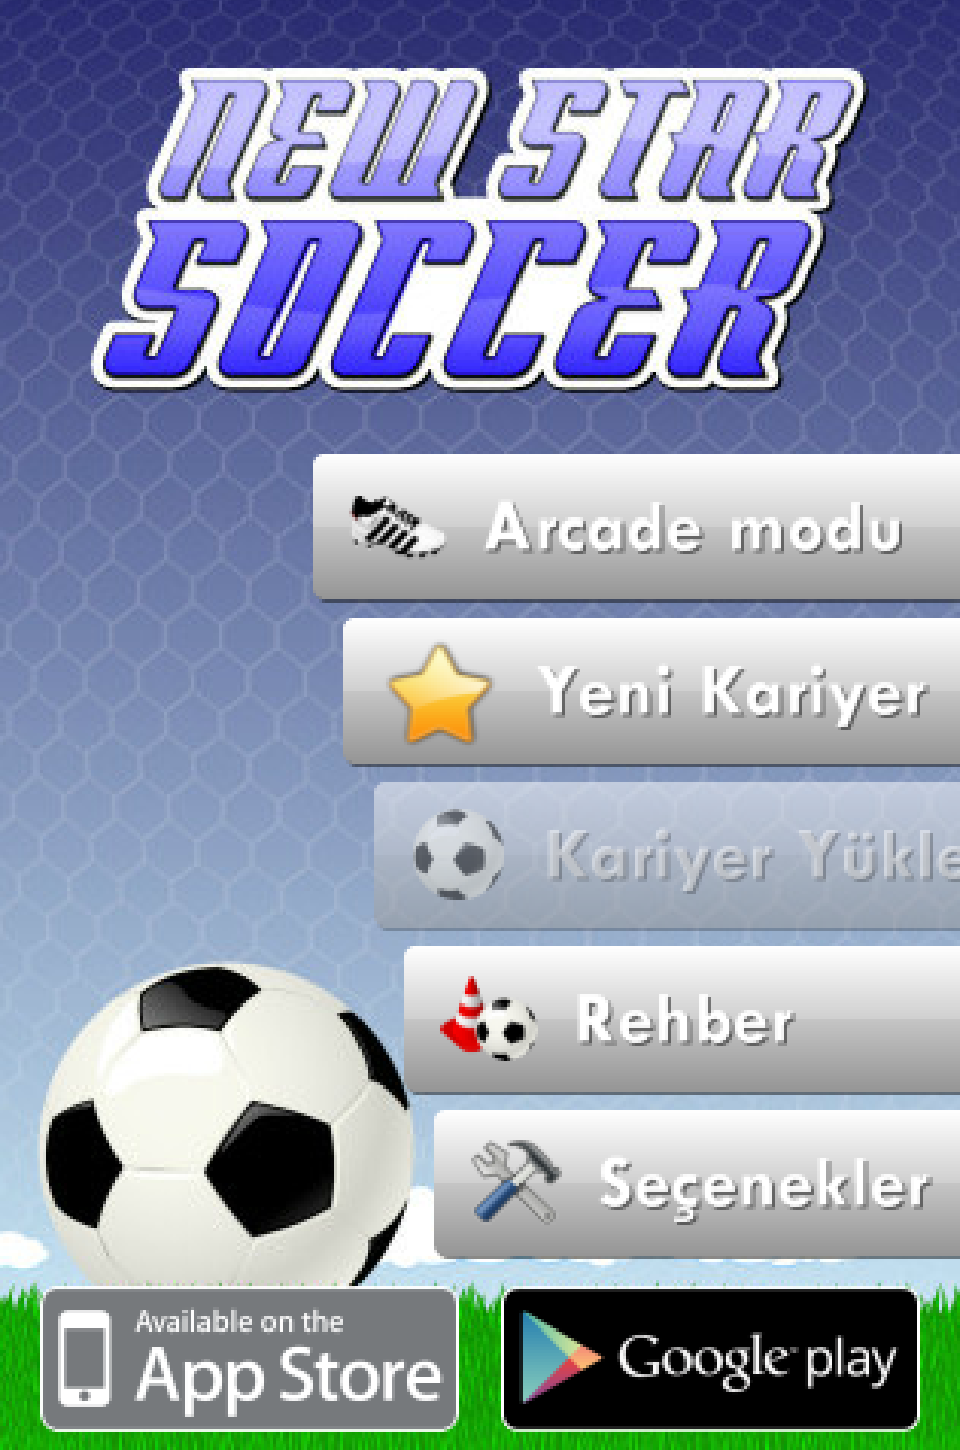 NSS - New Star Soccer